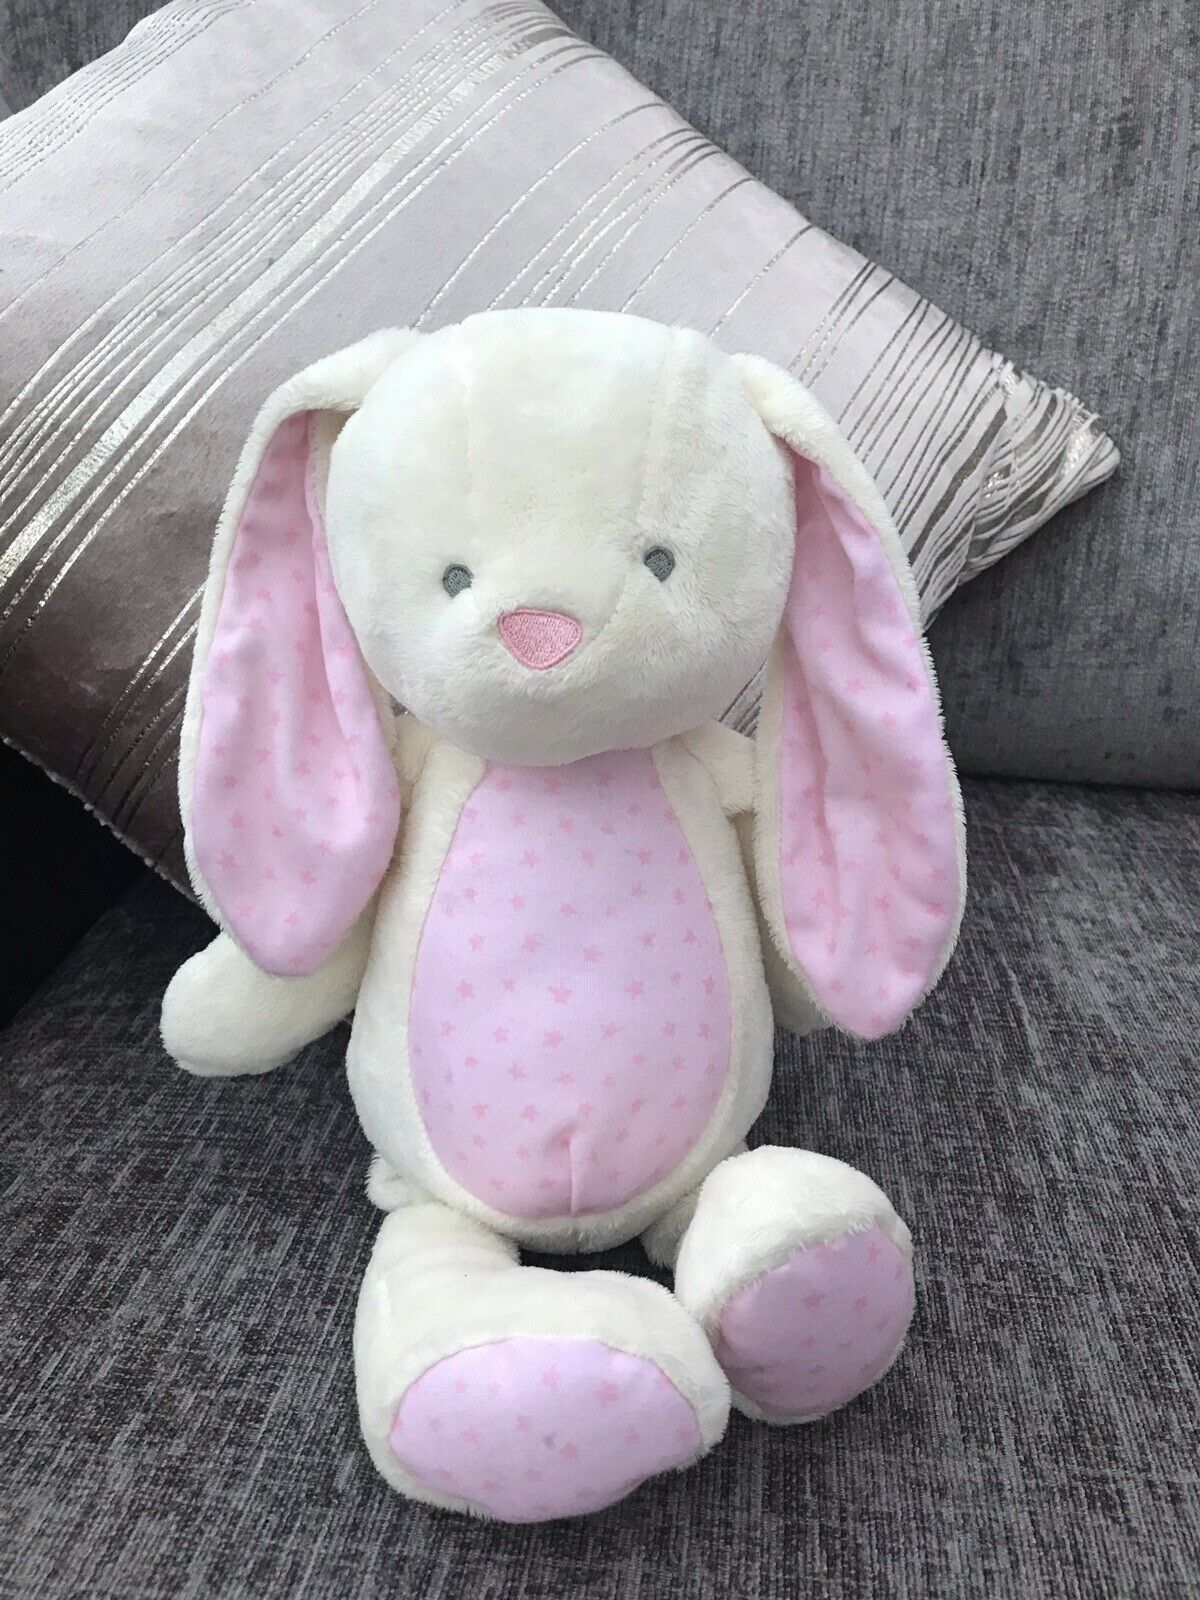 Tesco Carousel Bunny Rabbit Soft Toy Cream Pink plush spotty 14.5